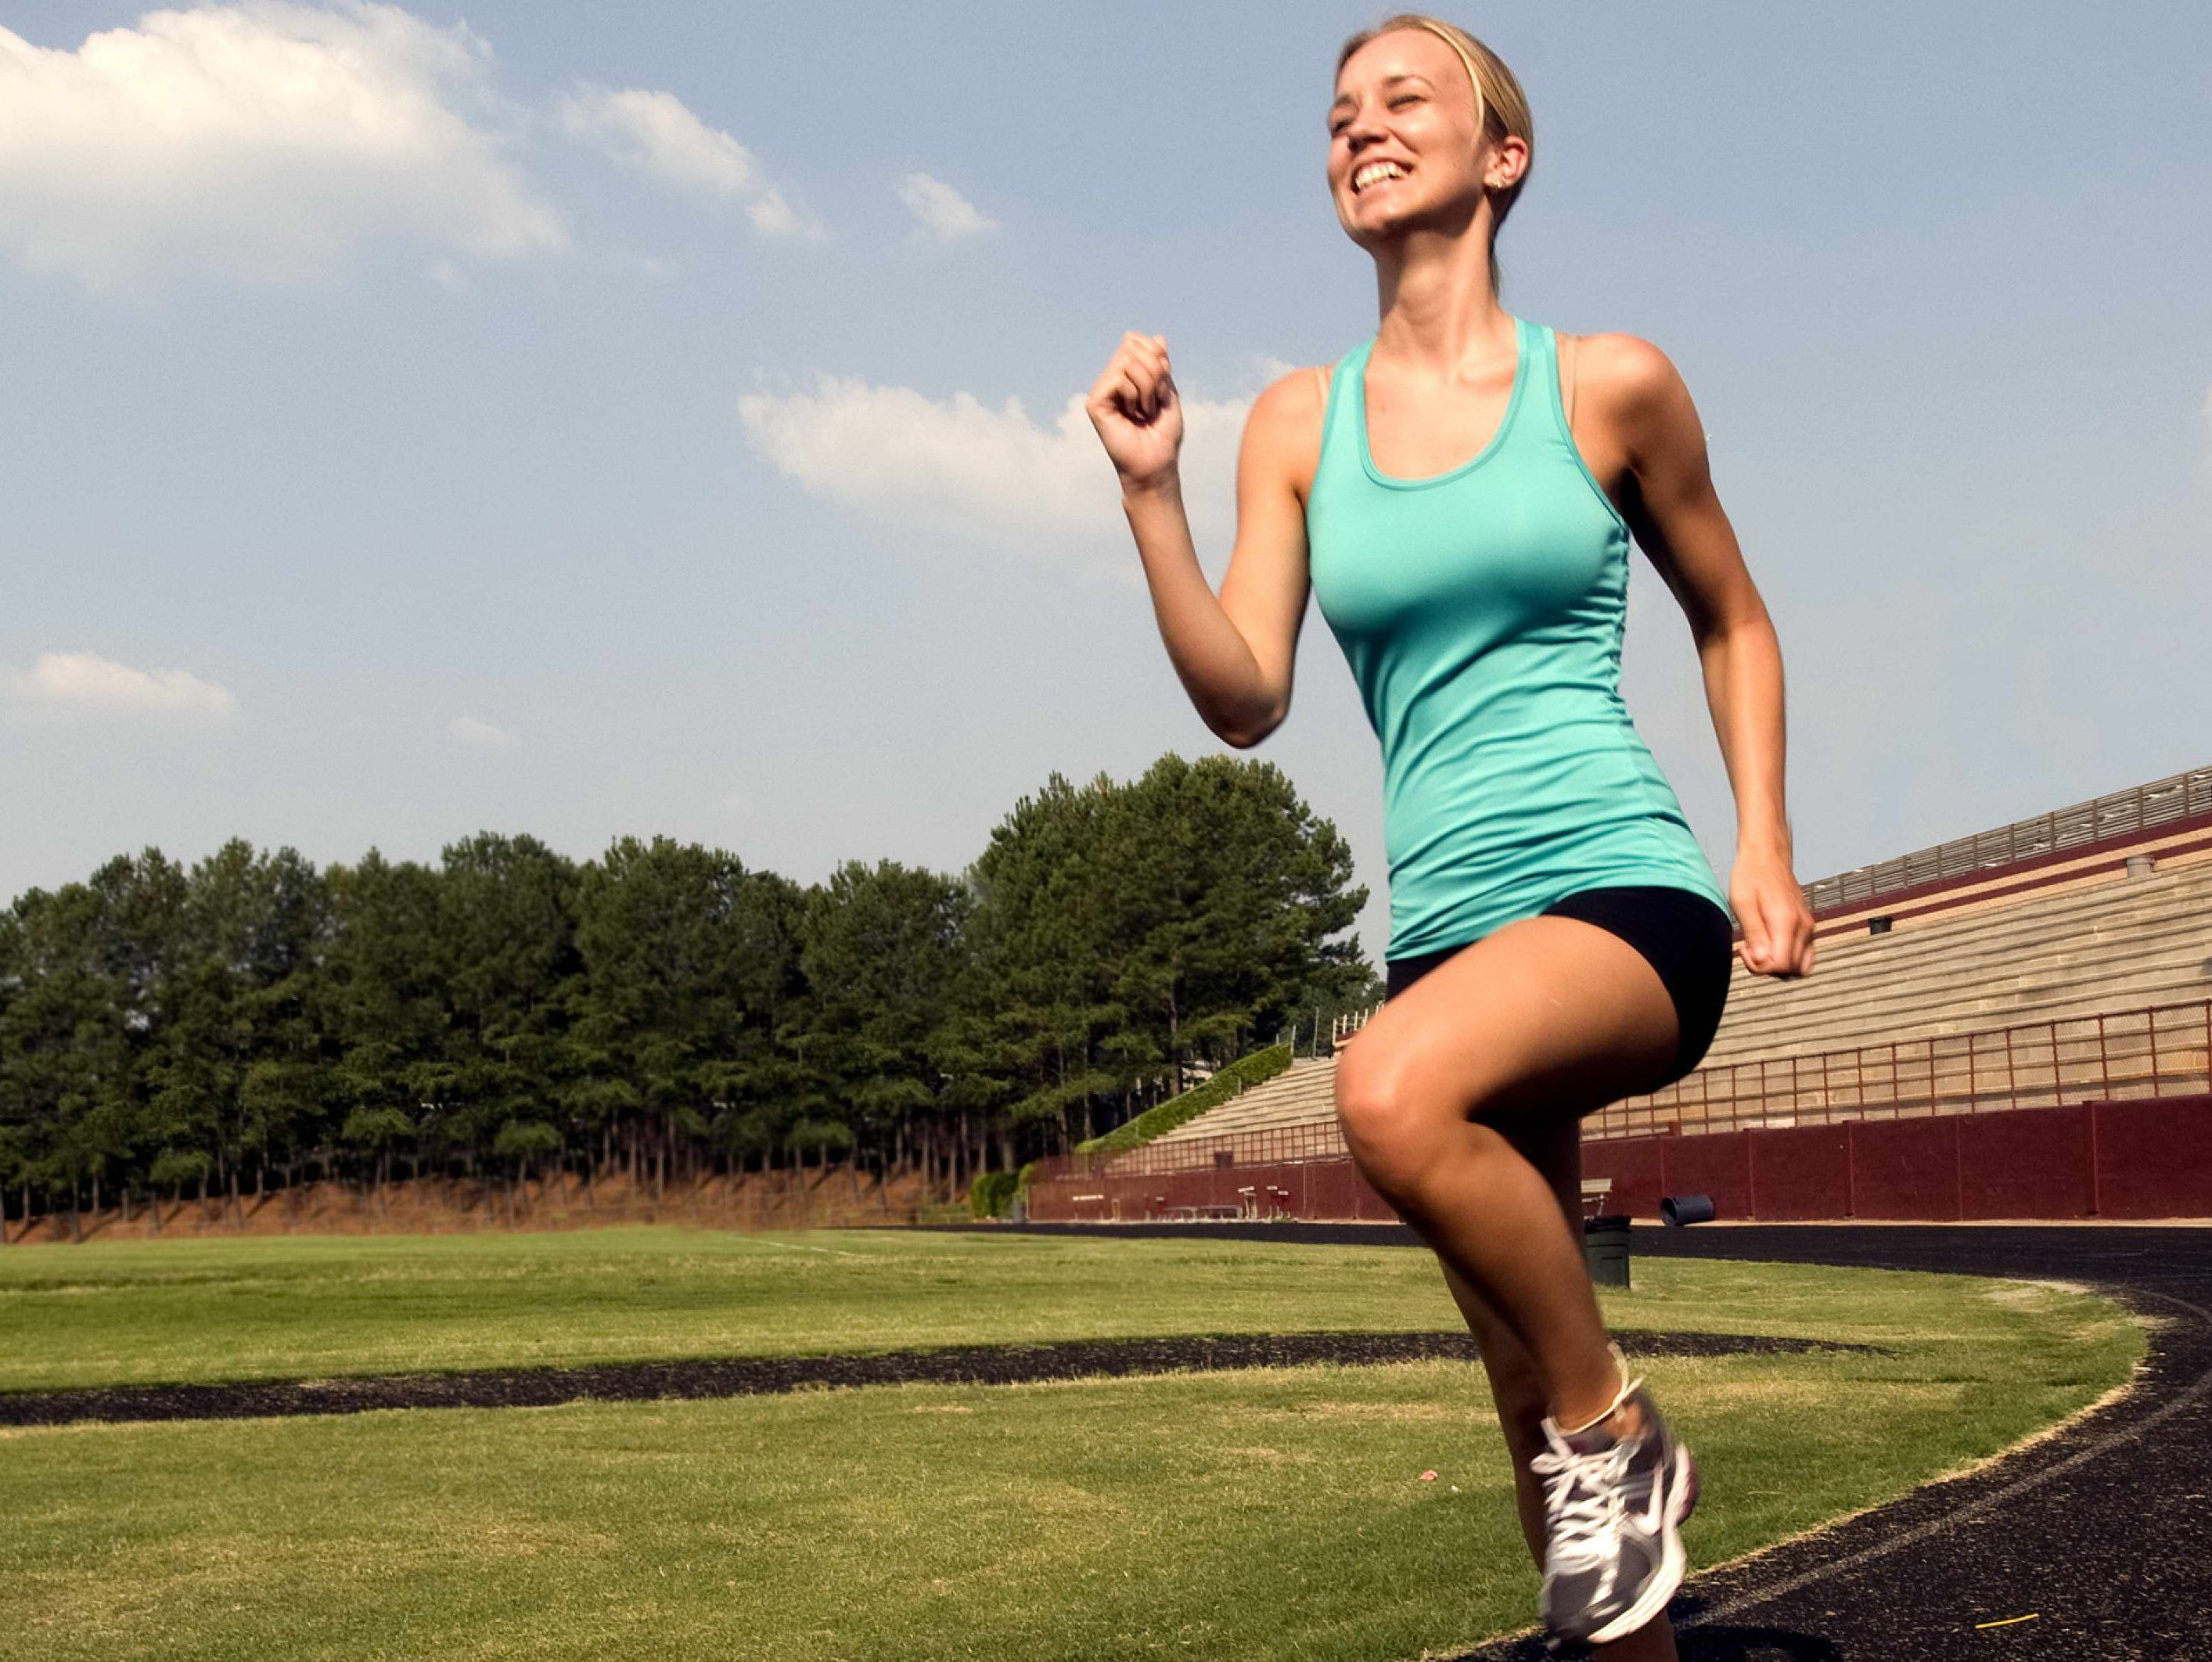 smiling-young-woman-was-jogging-with-a-high-legged-technique-e1430133662912 (1)